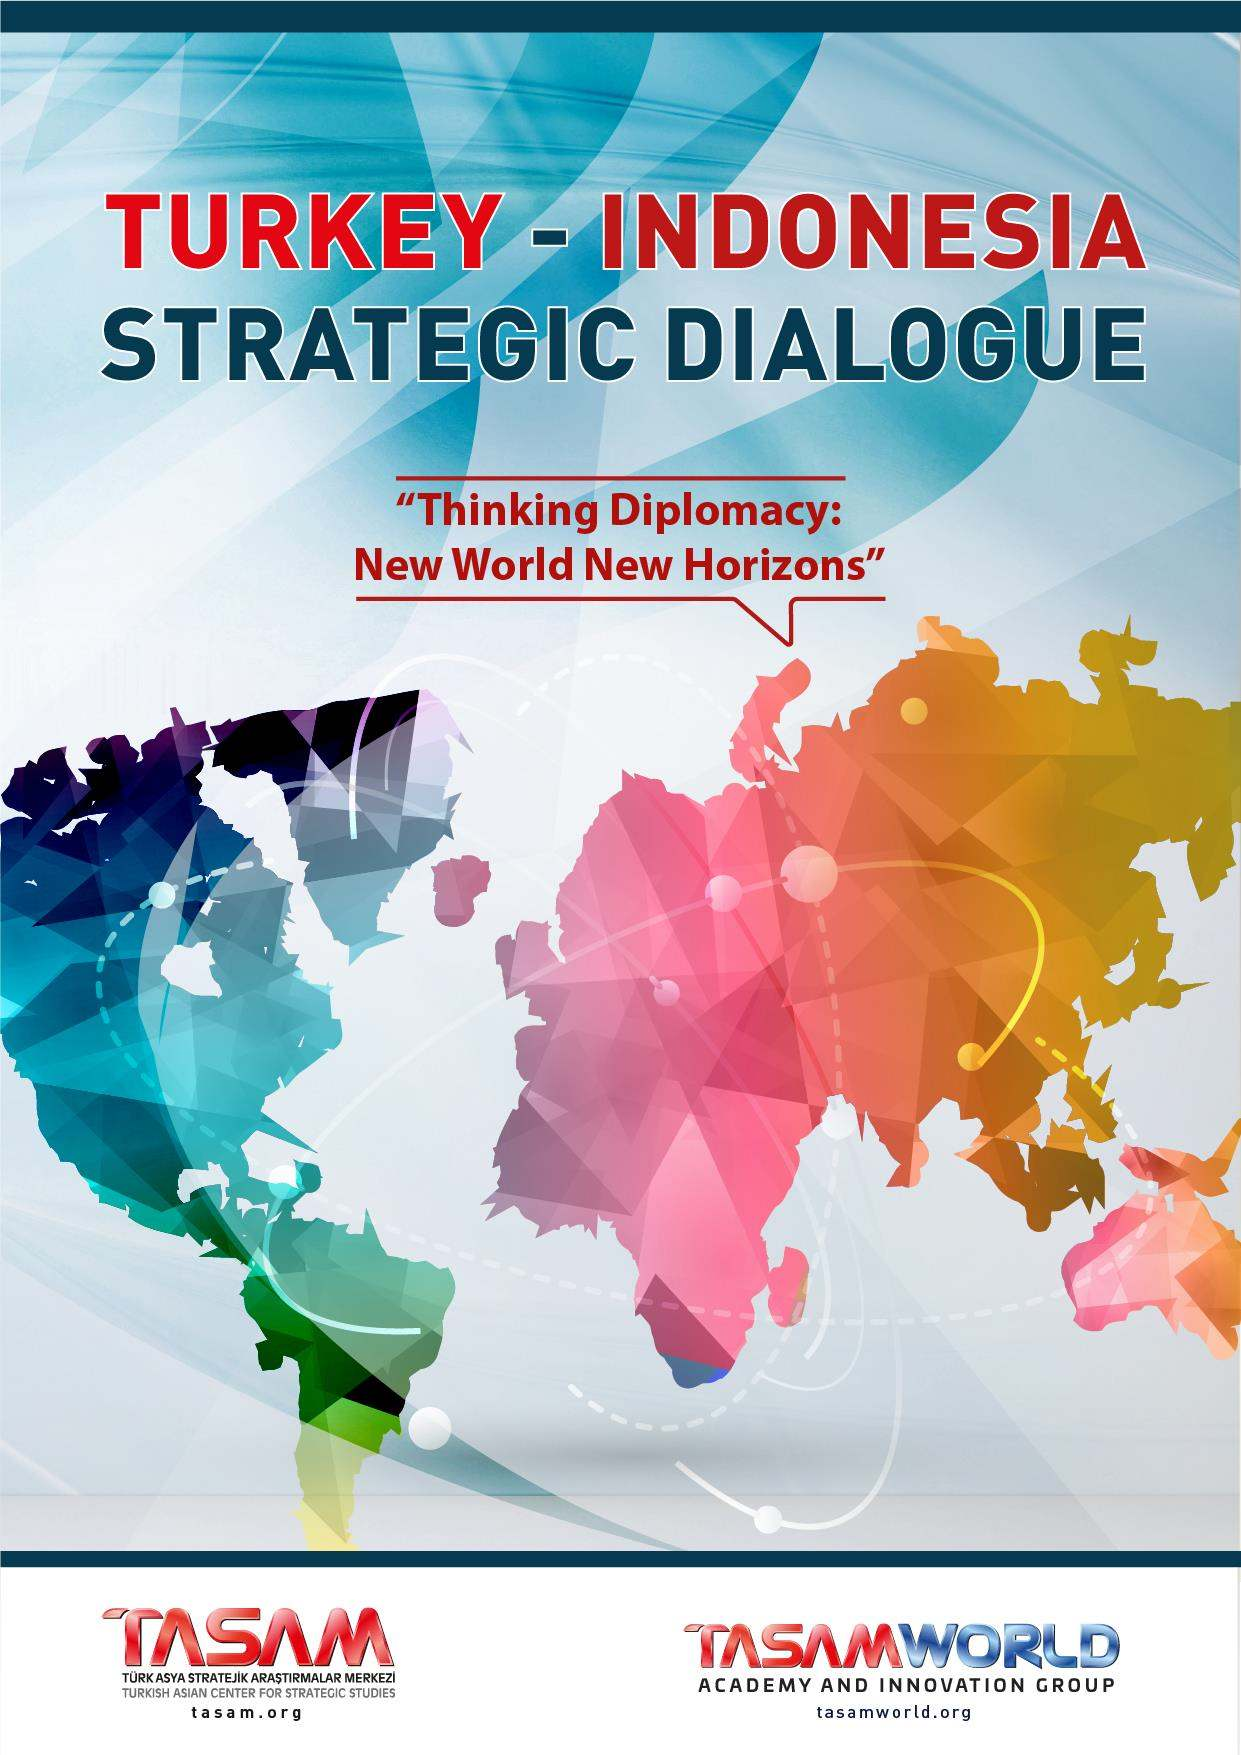 Turkey - Indonesia Strategic Dialogue